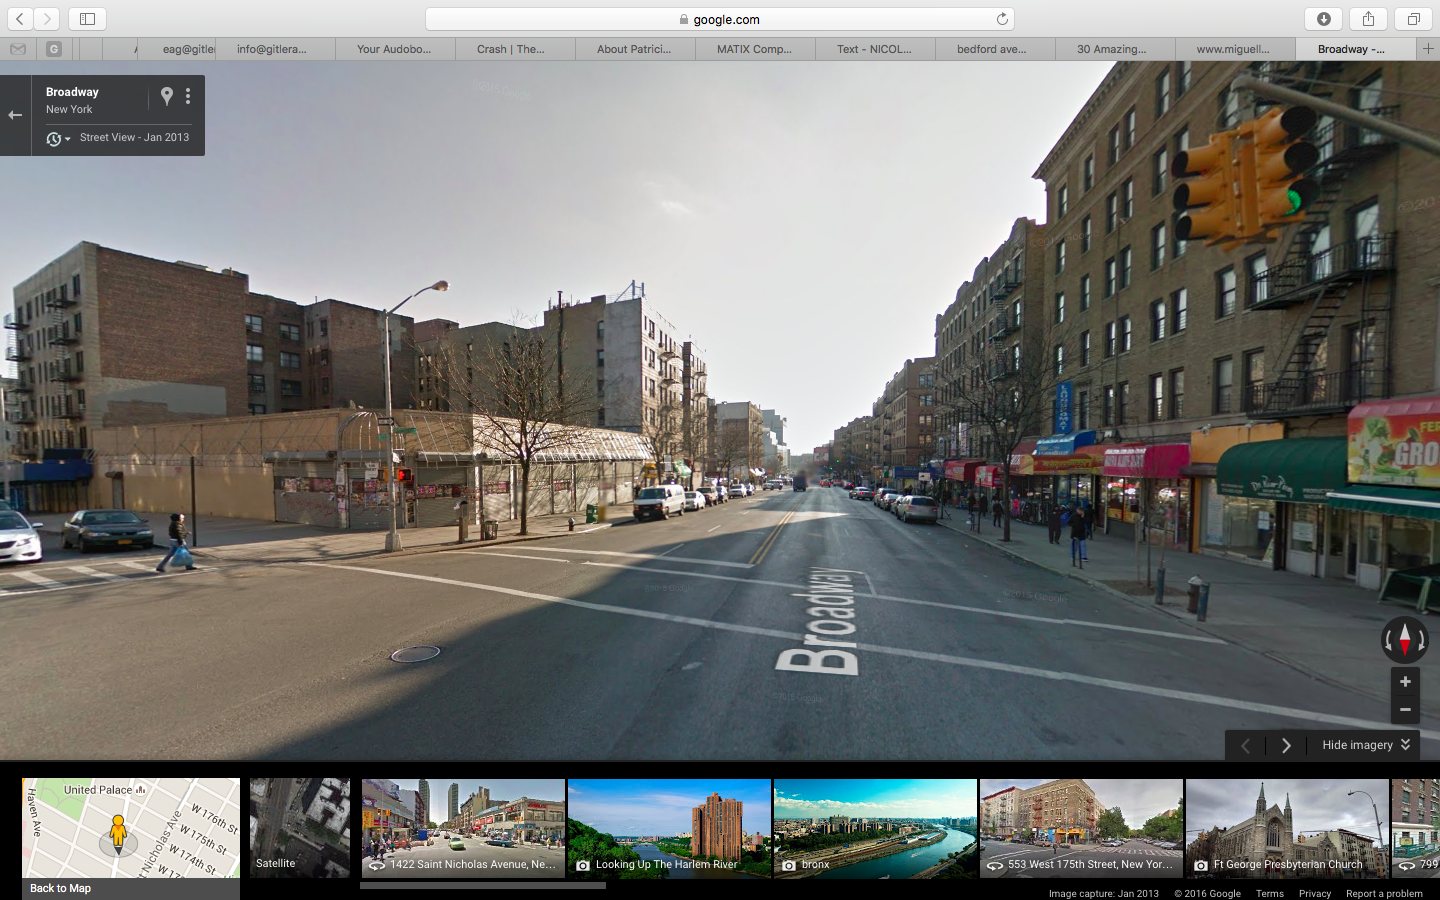 broadway - 172 and 173 3/4